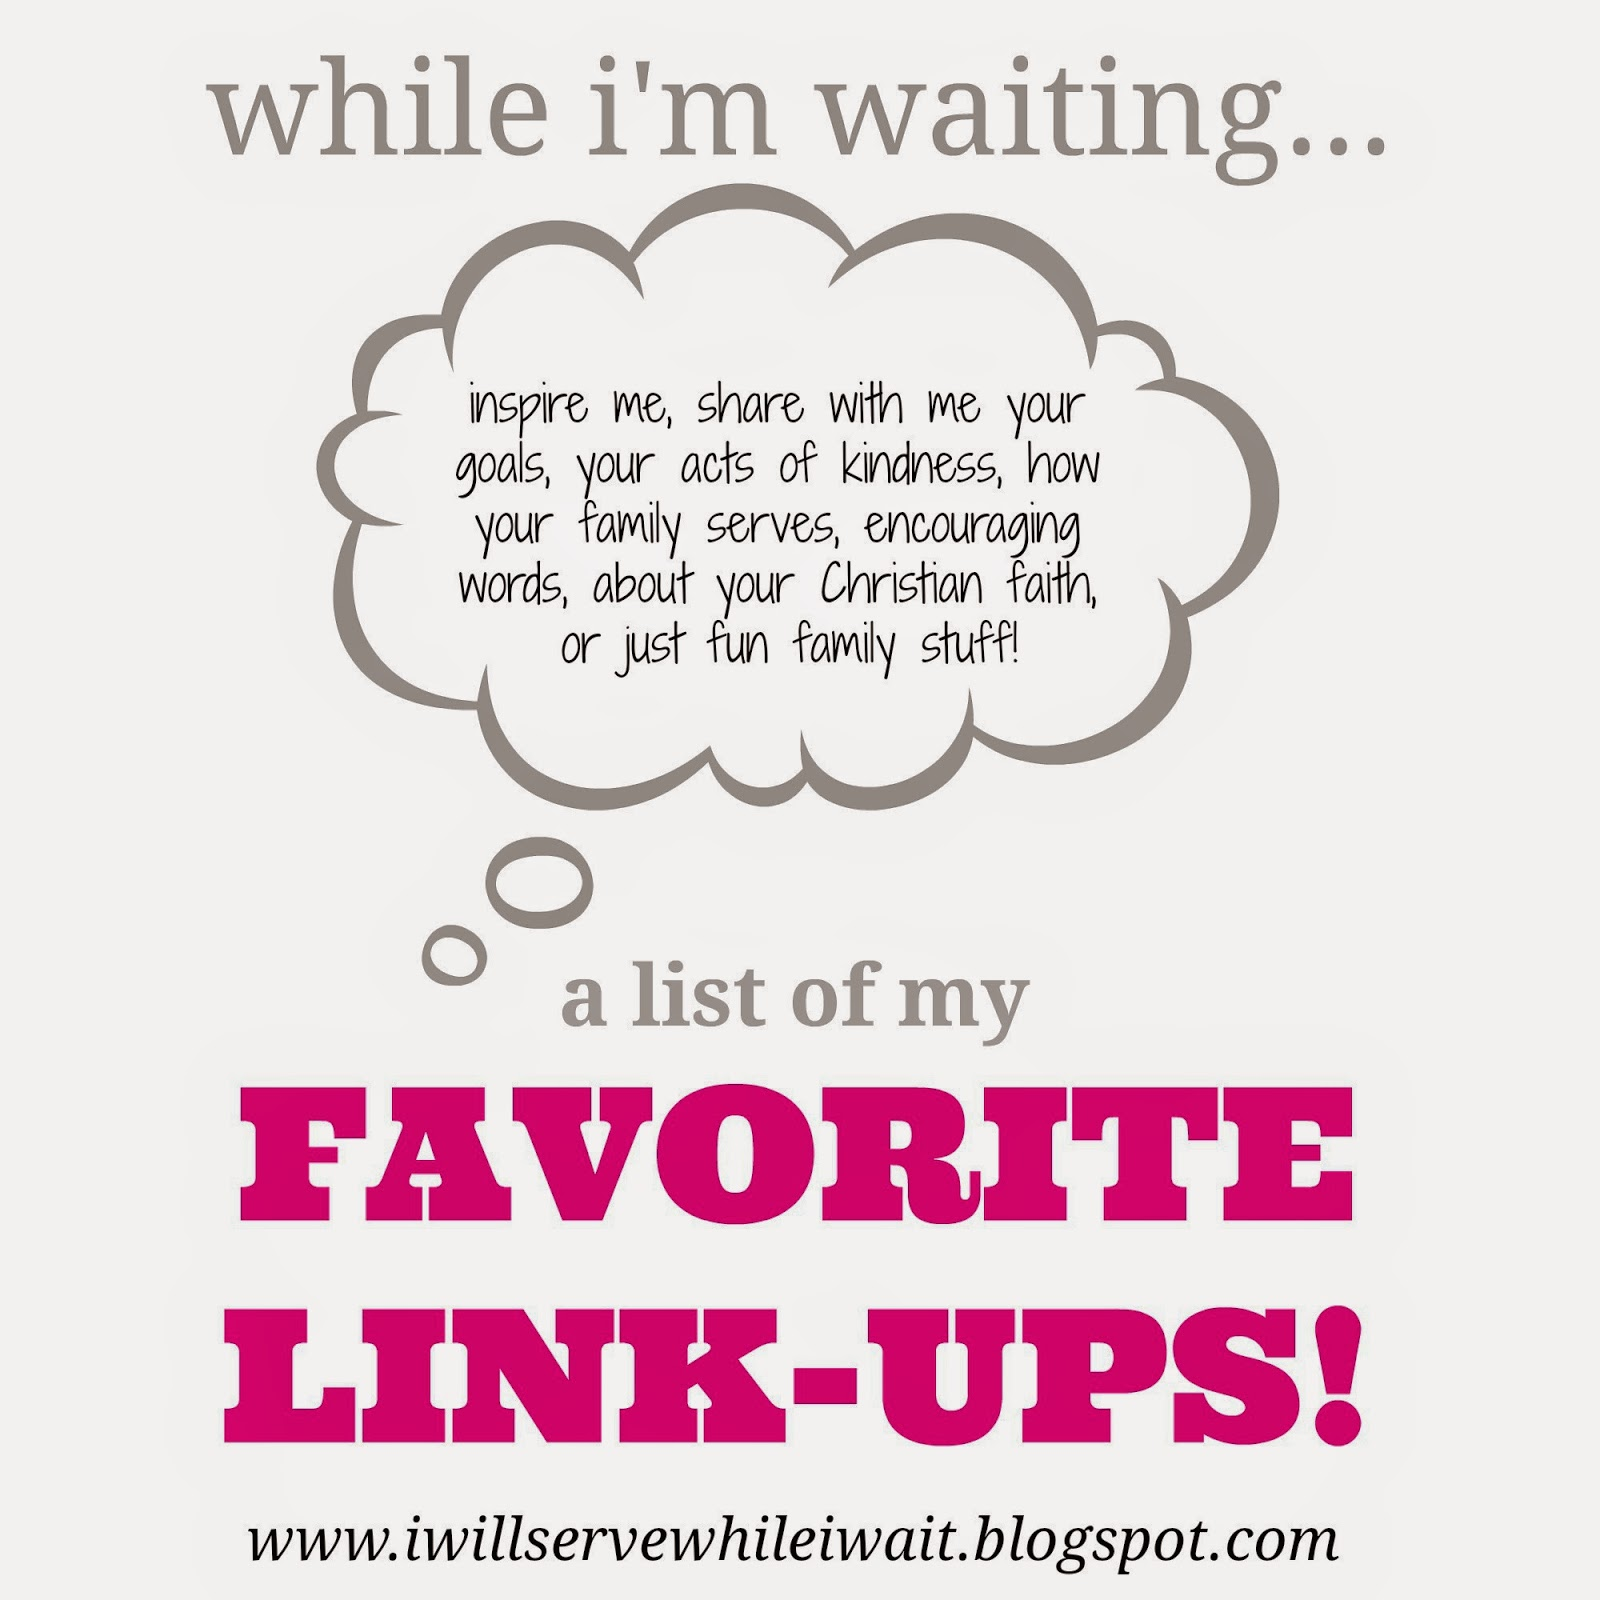 While I'm Waiting...favorite link-ups